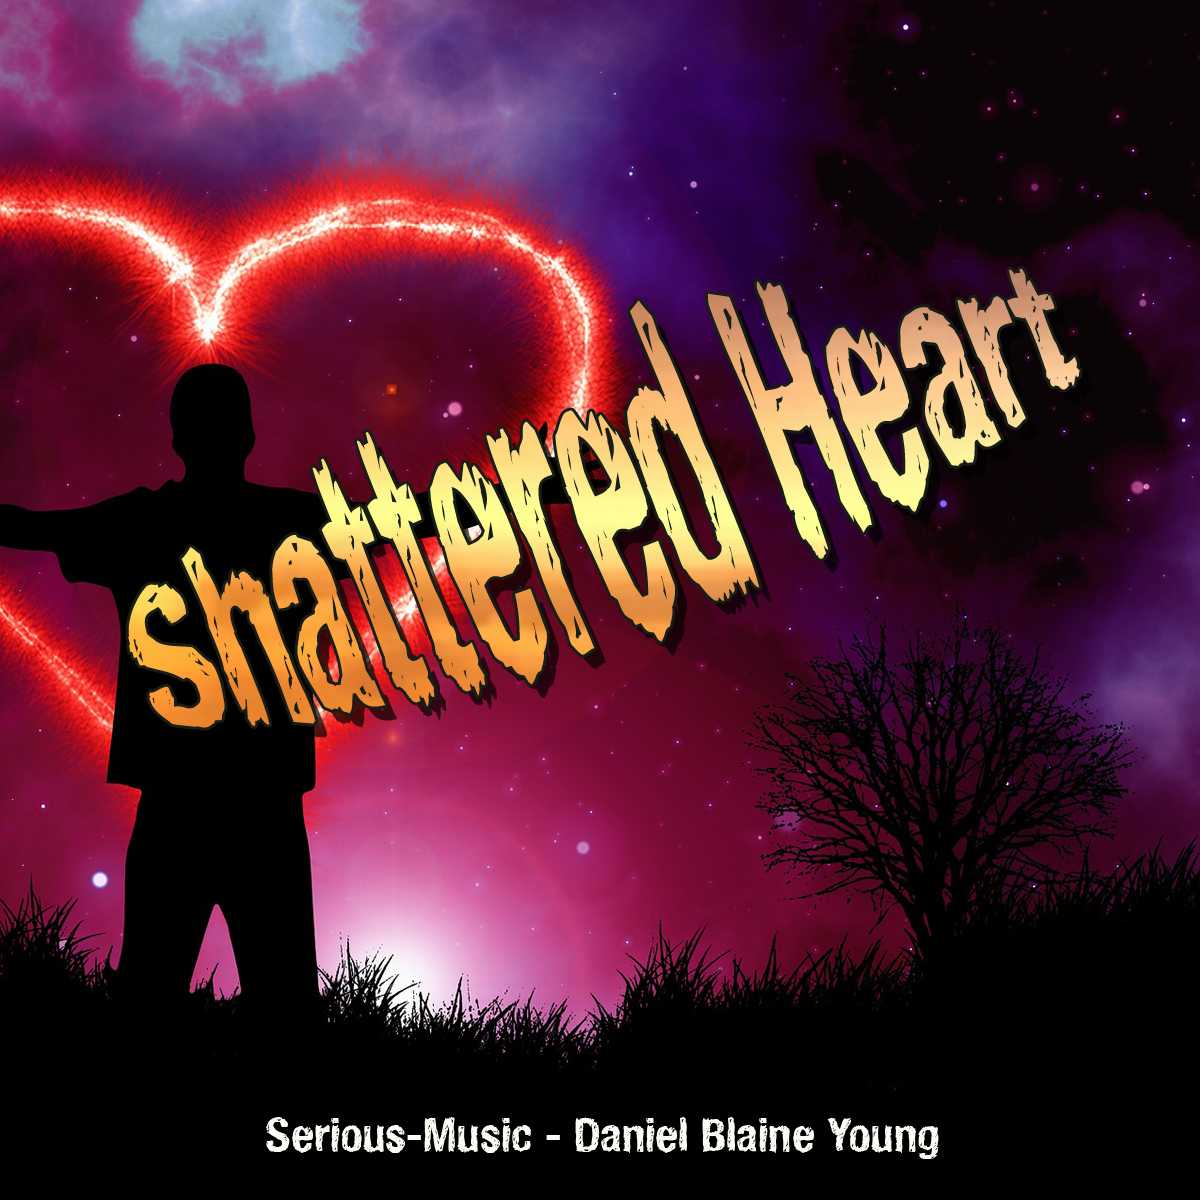 Shattered Heart feat. Danlb Young - Album COMFORT ZONE